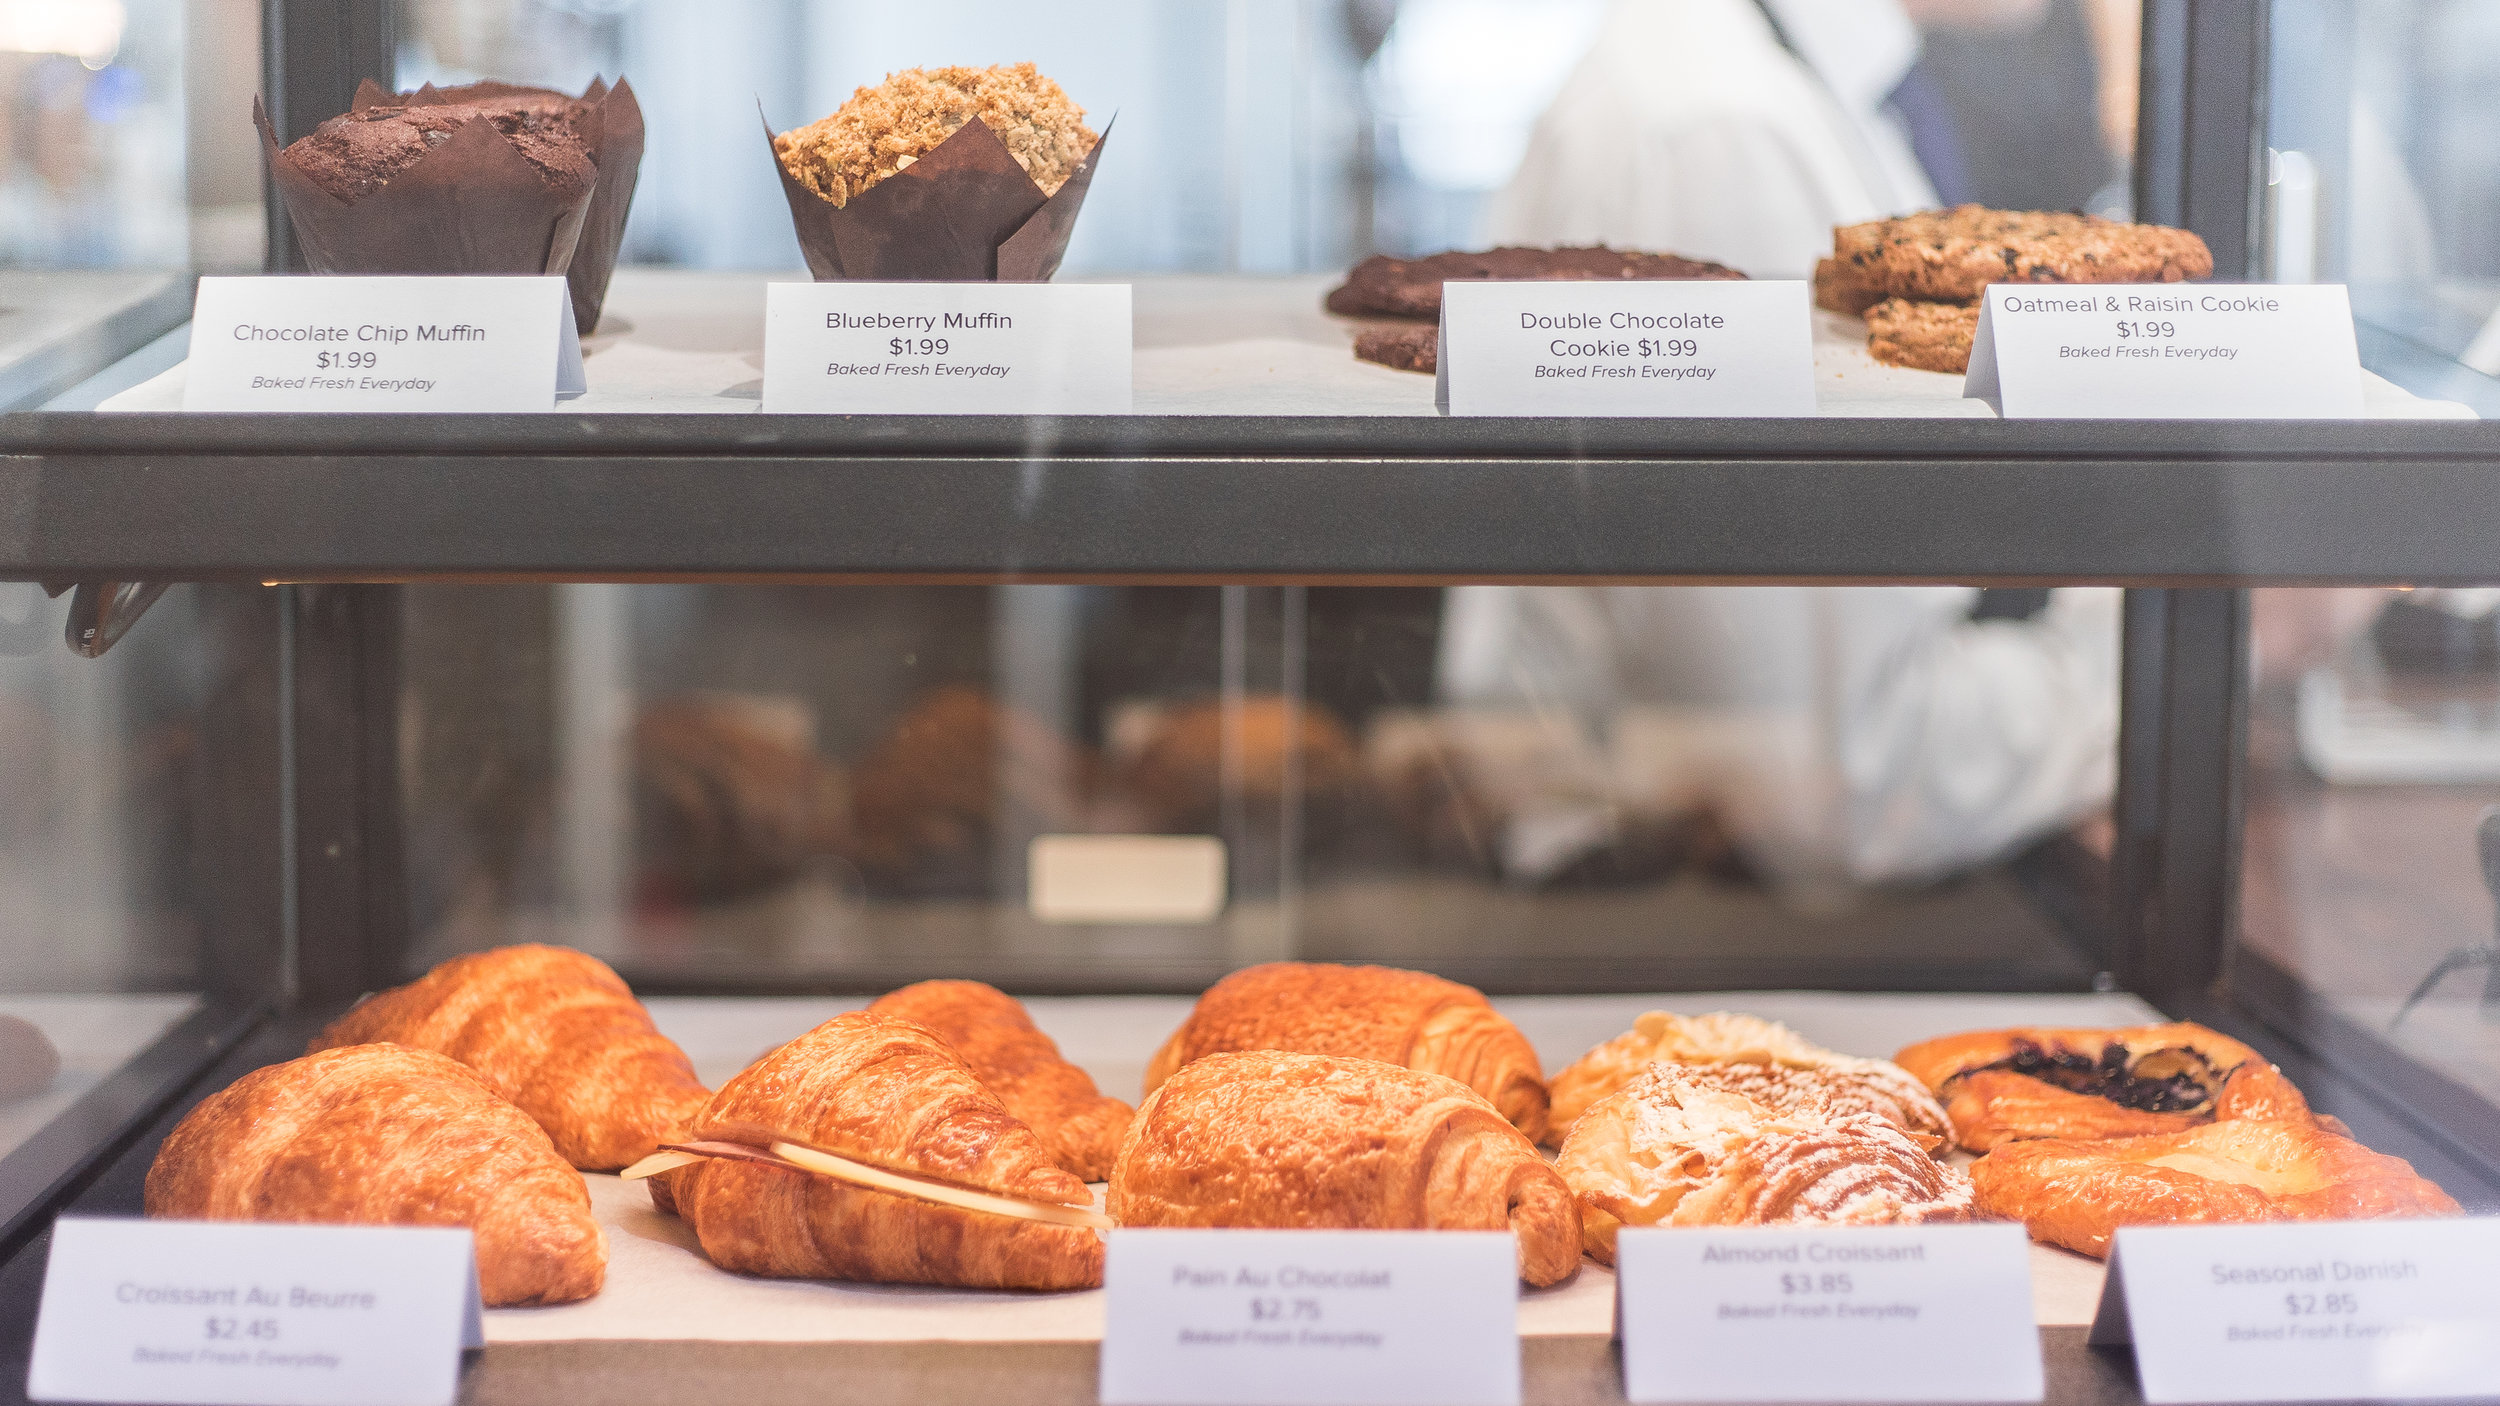 pastrie delivery and catering, Parisian boulangerie patisserie